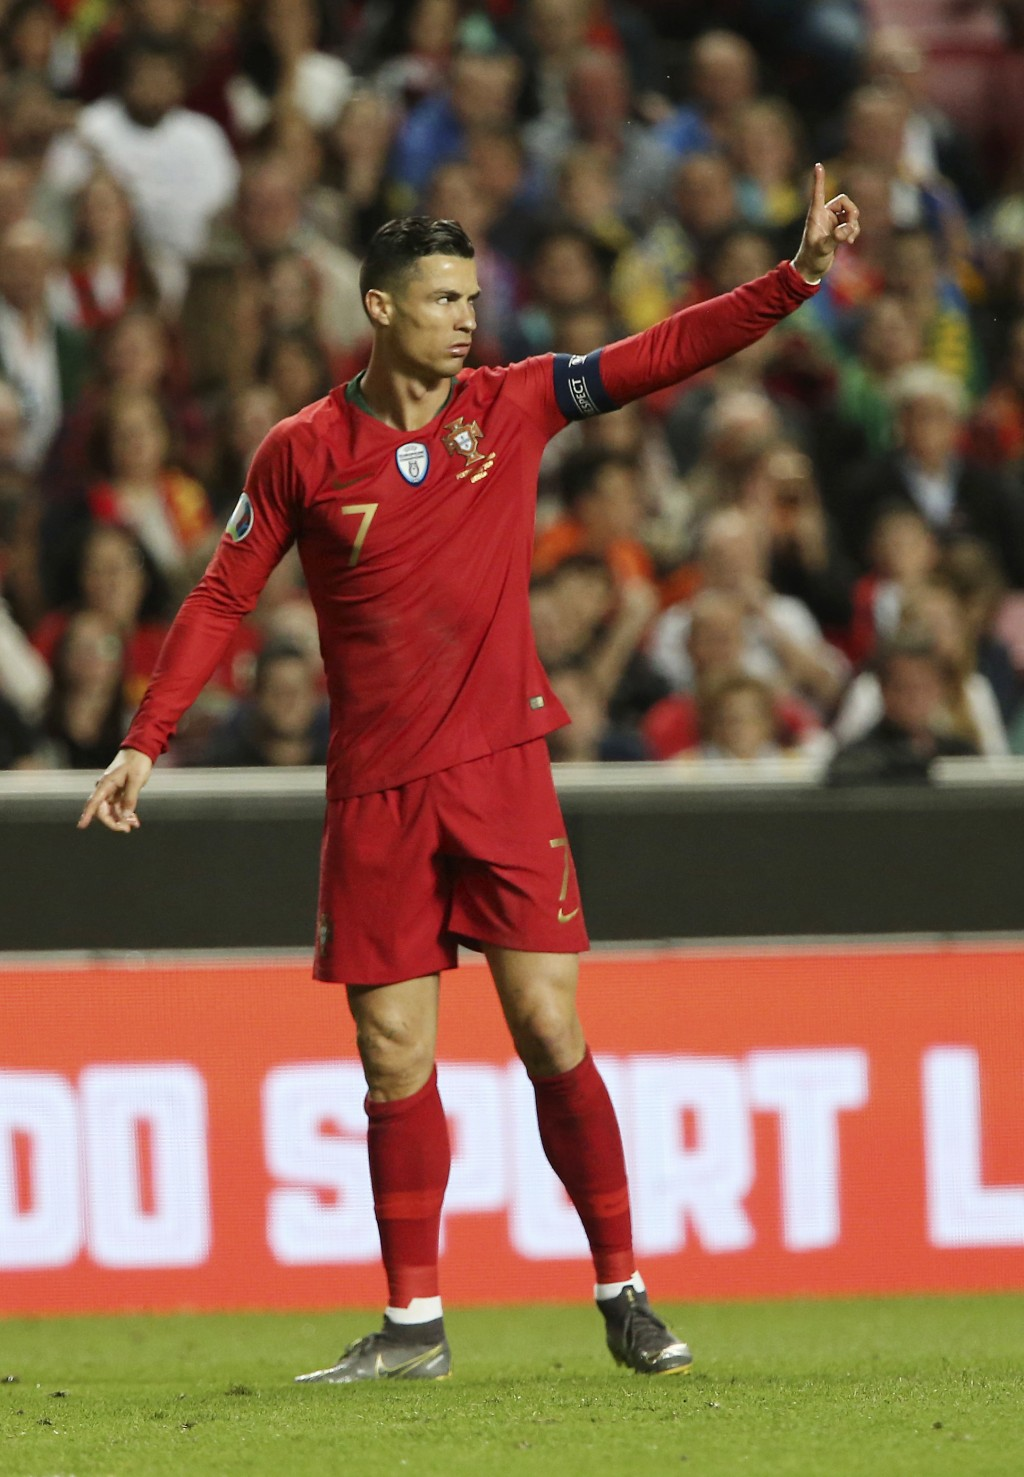 Portugal's Cristiano Ronaldo gestures during the Euro 2020 group B qualifying soccer match between Portugal and Ukraine at the Luz stadium in Lisbon, ...